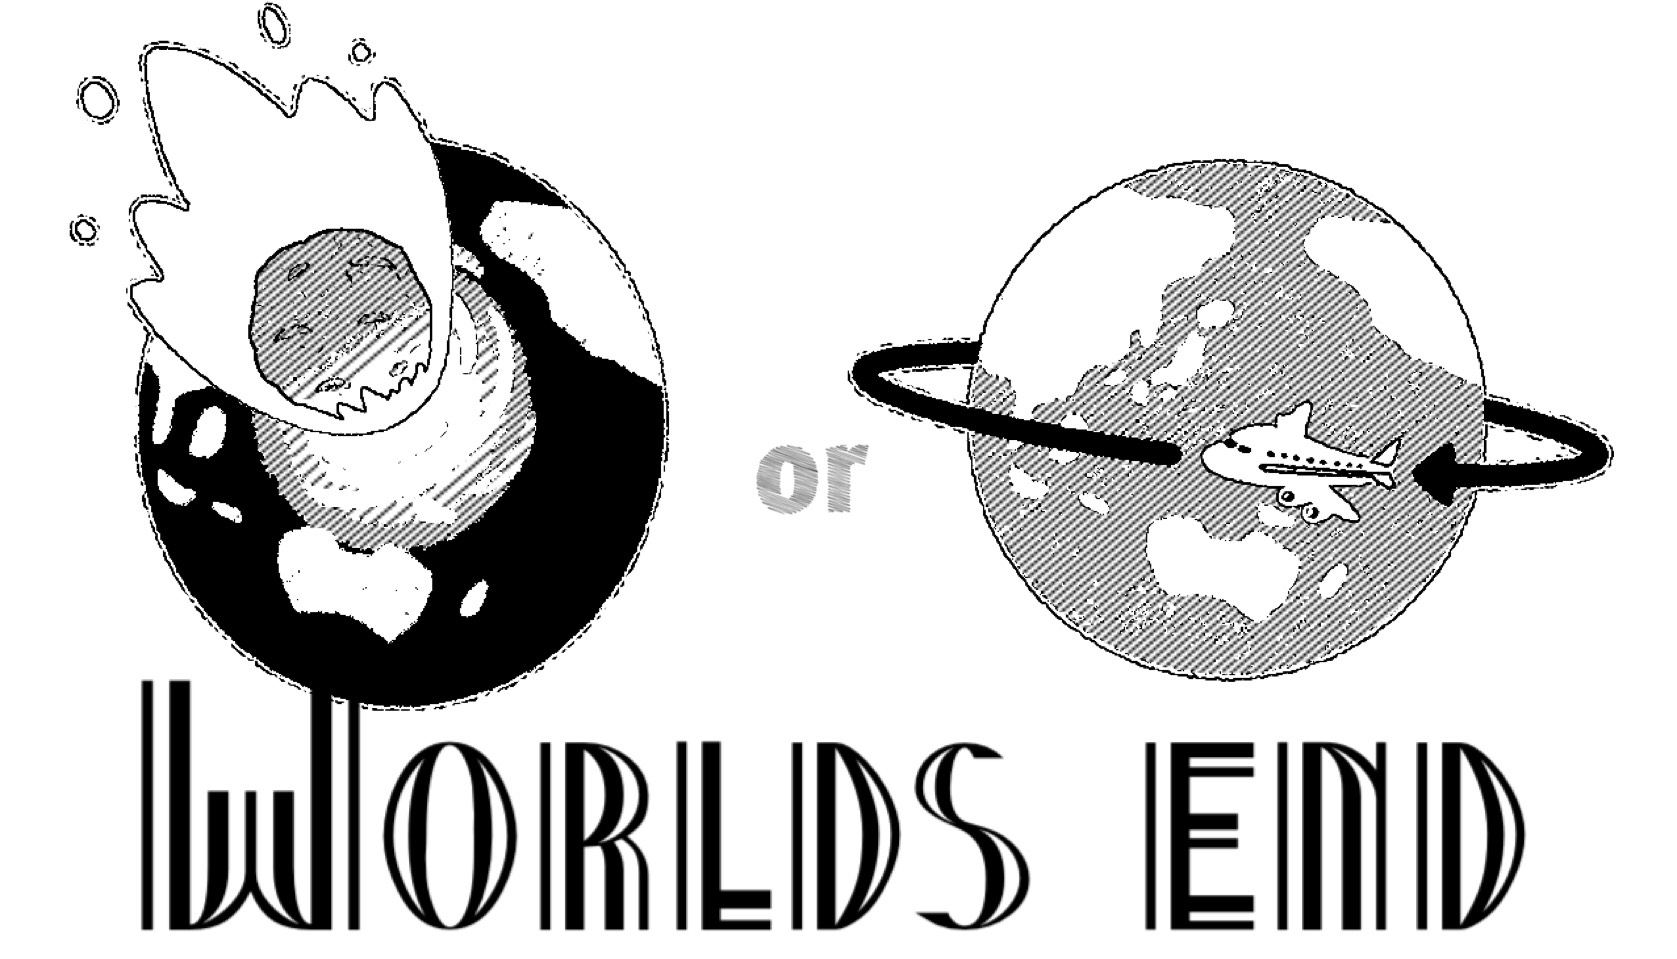 「Worlds end」のイメージ